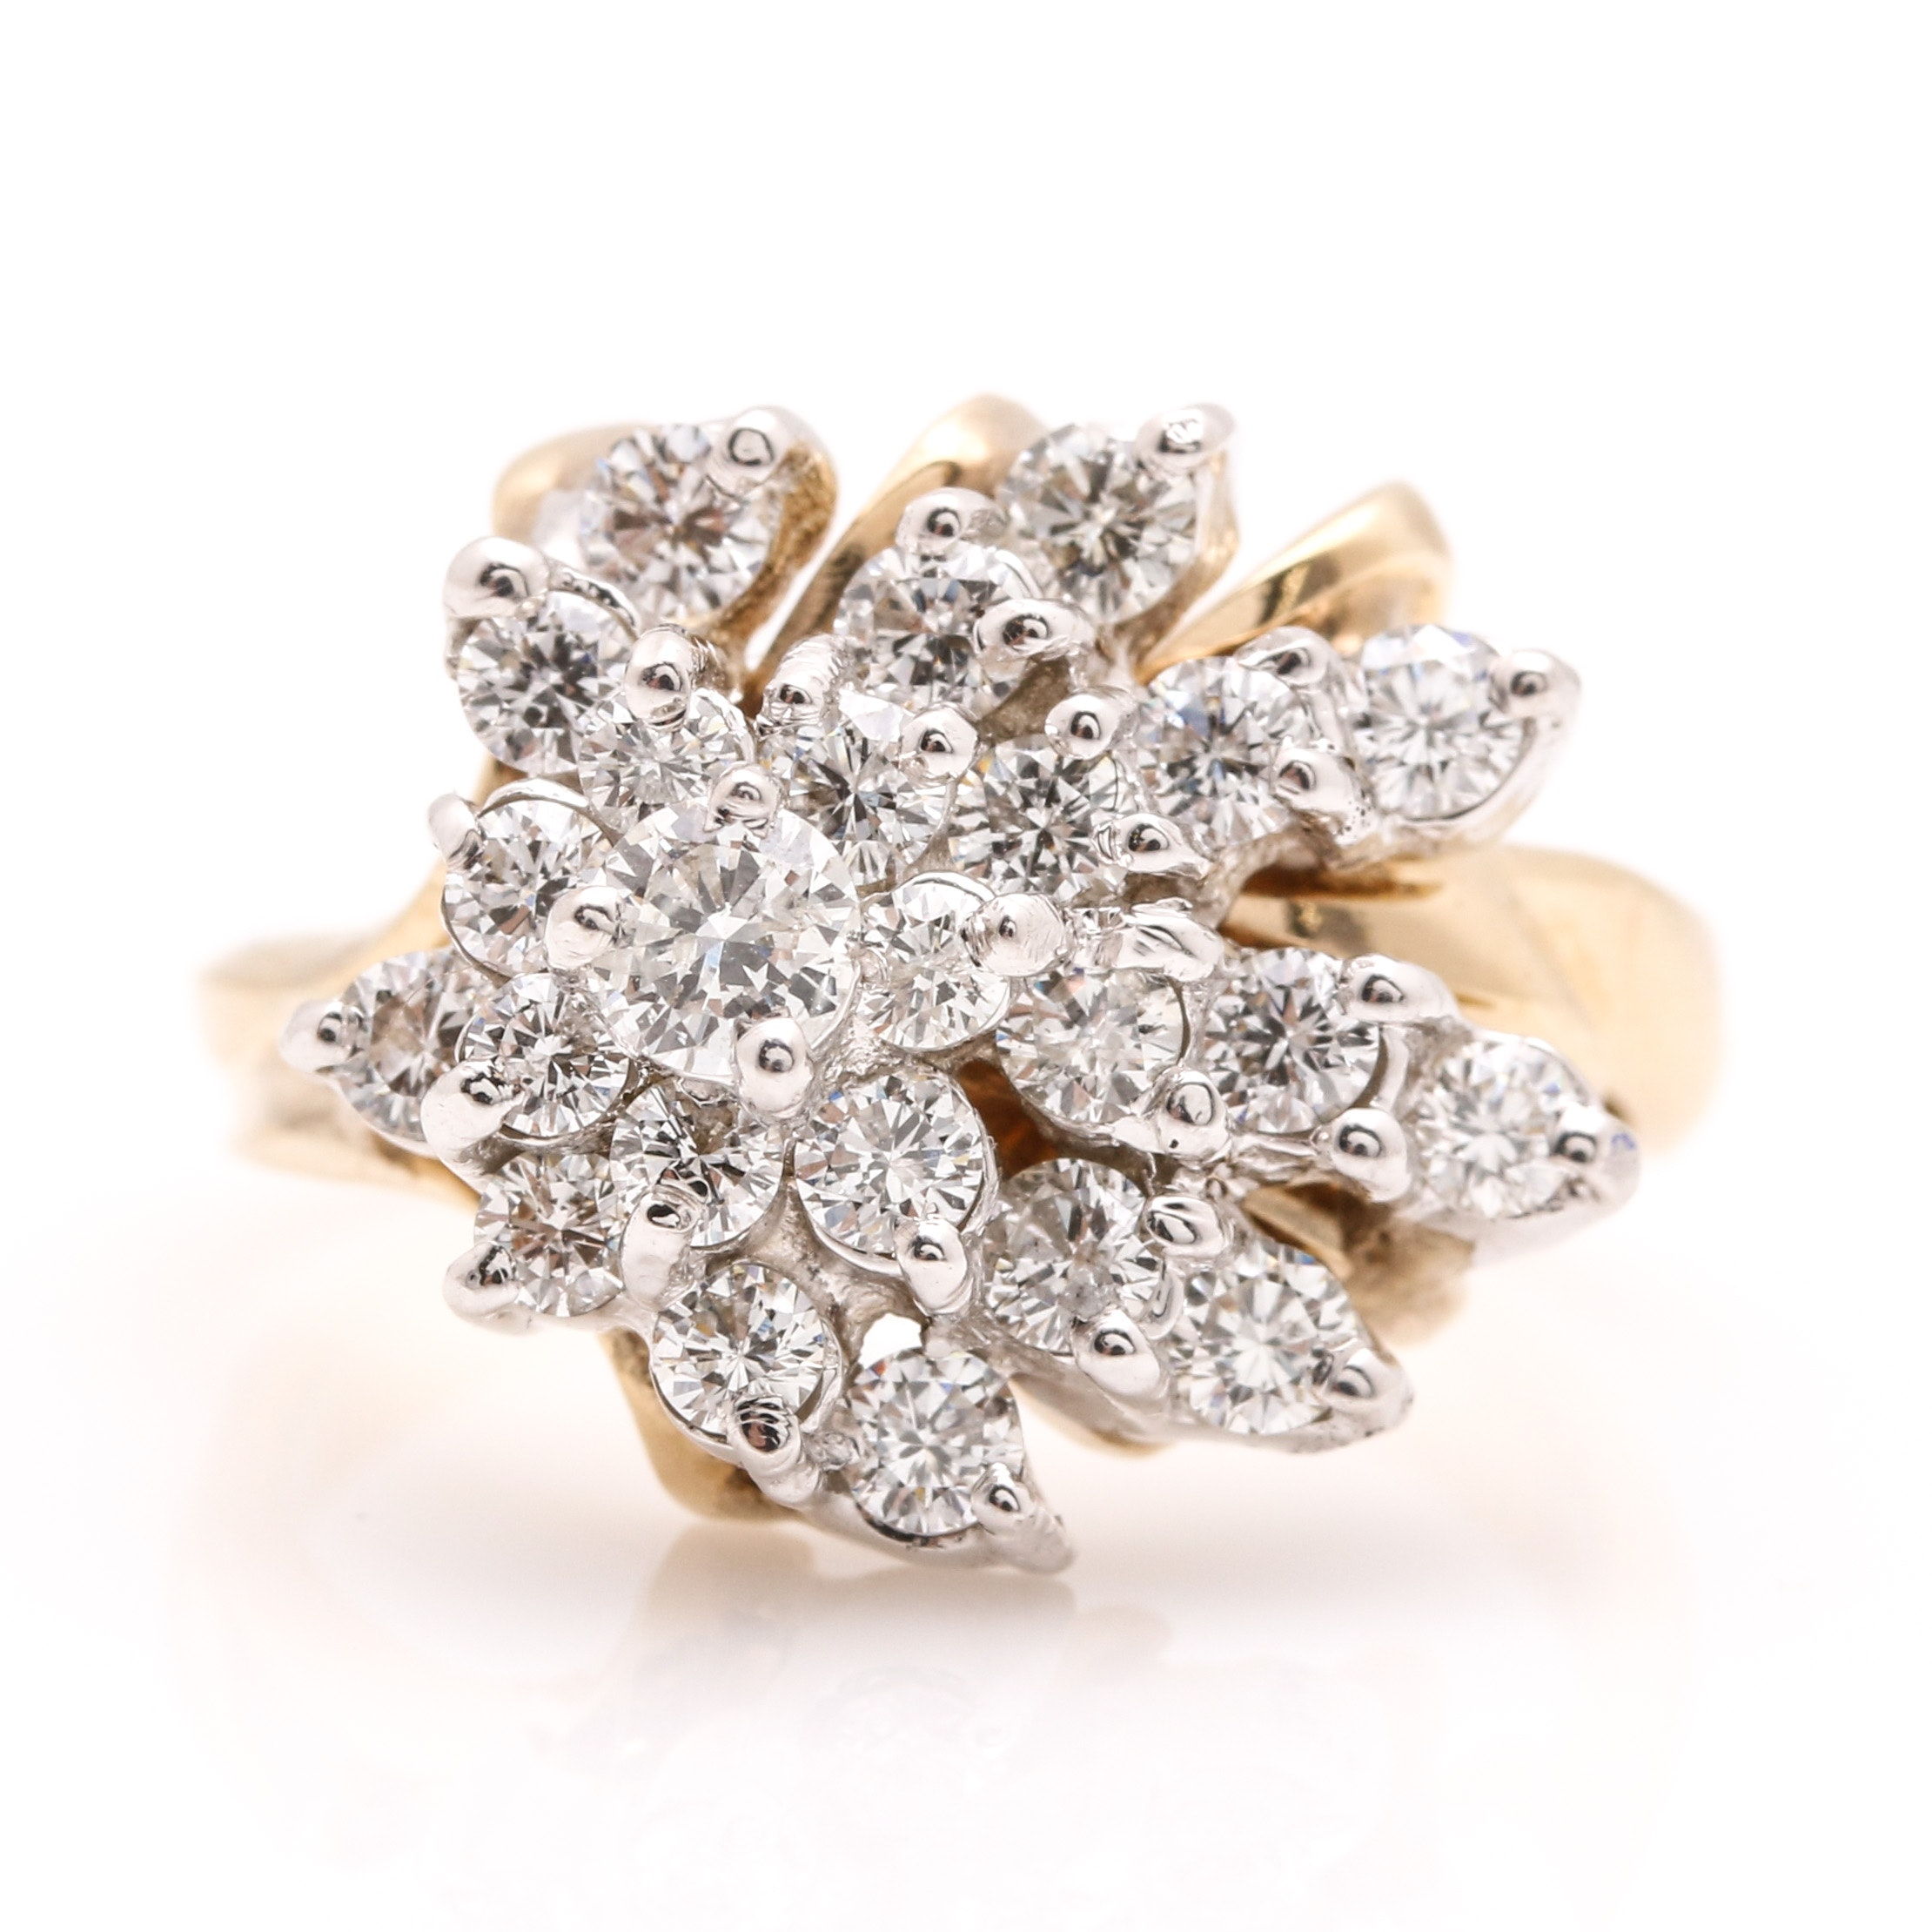 14K Two Tone Gold 1.08 CTW Diamond Ring